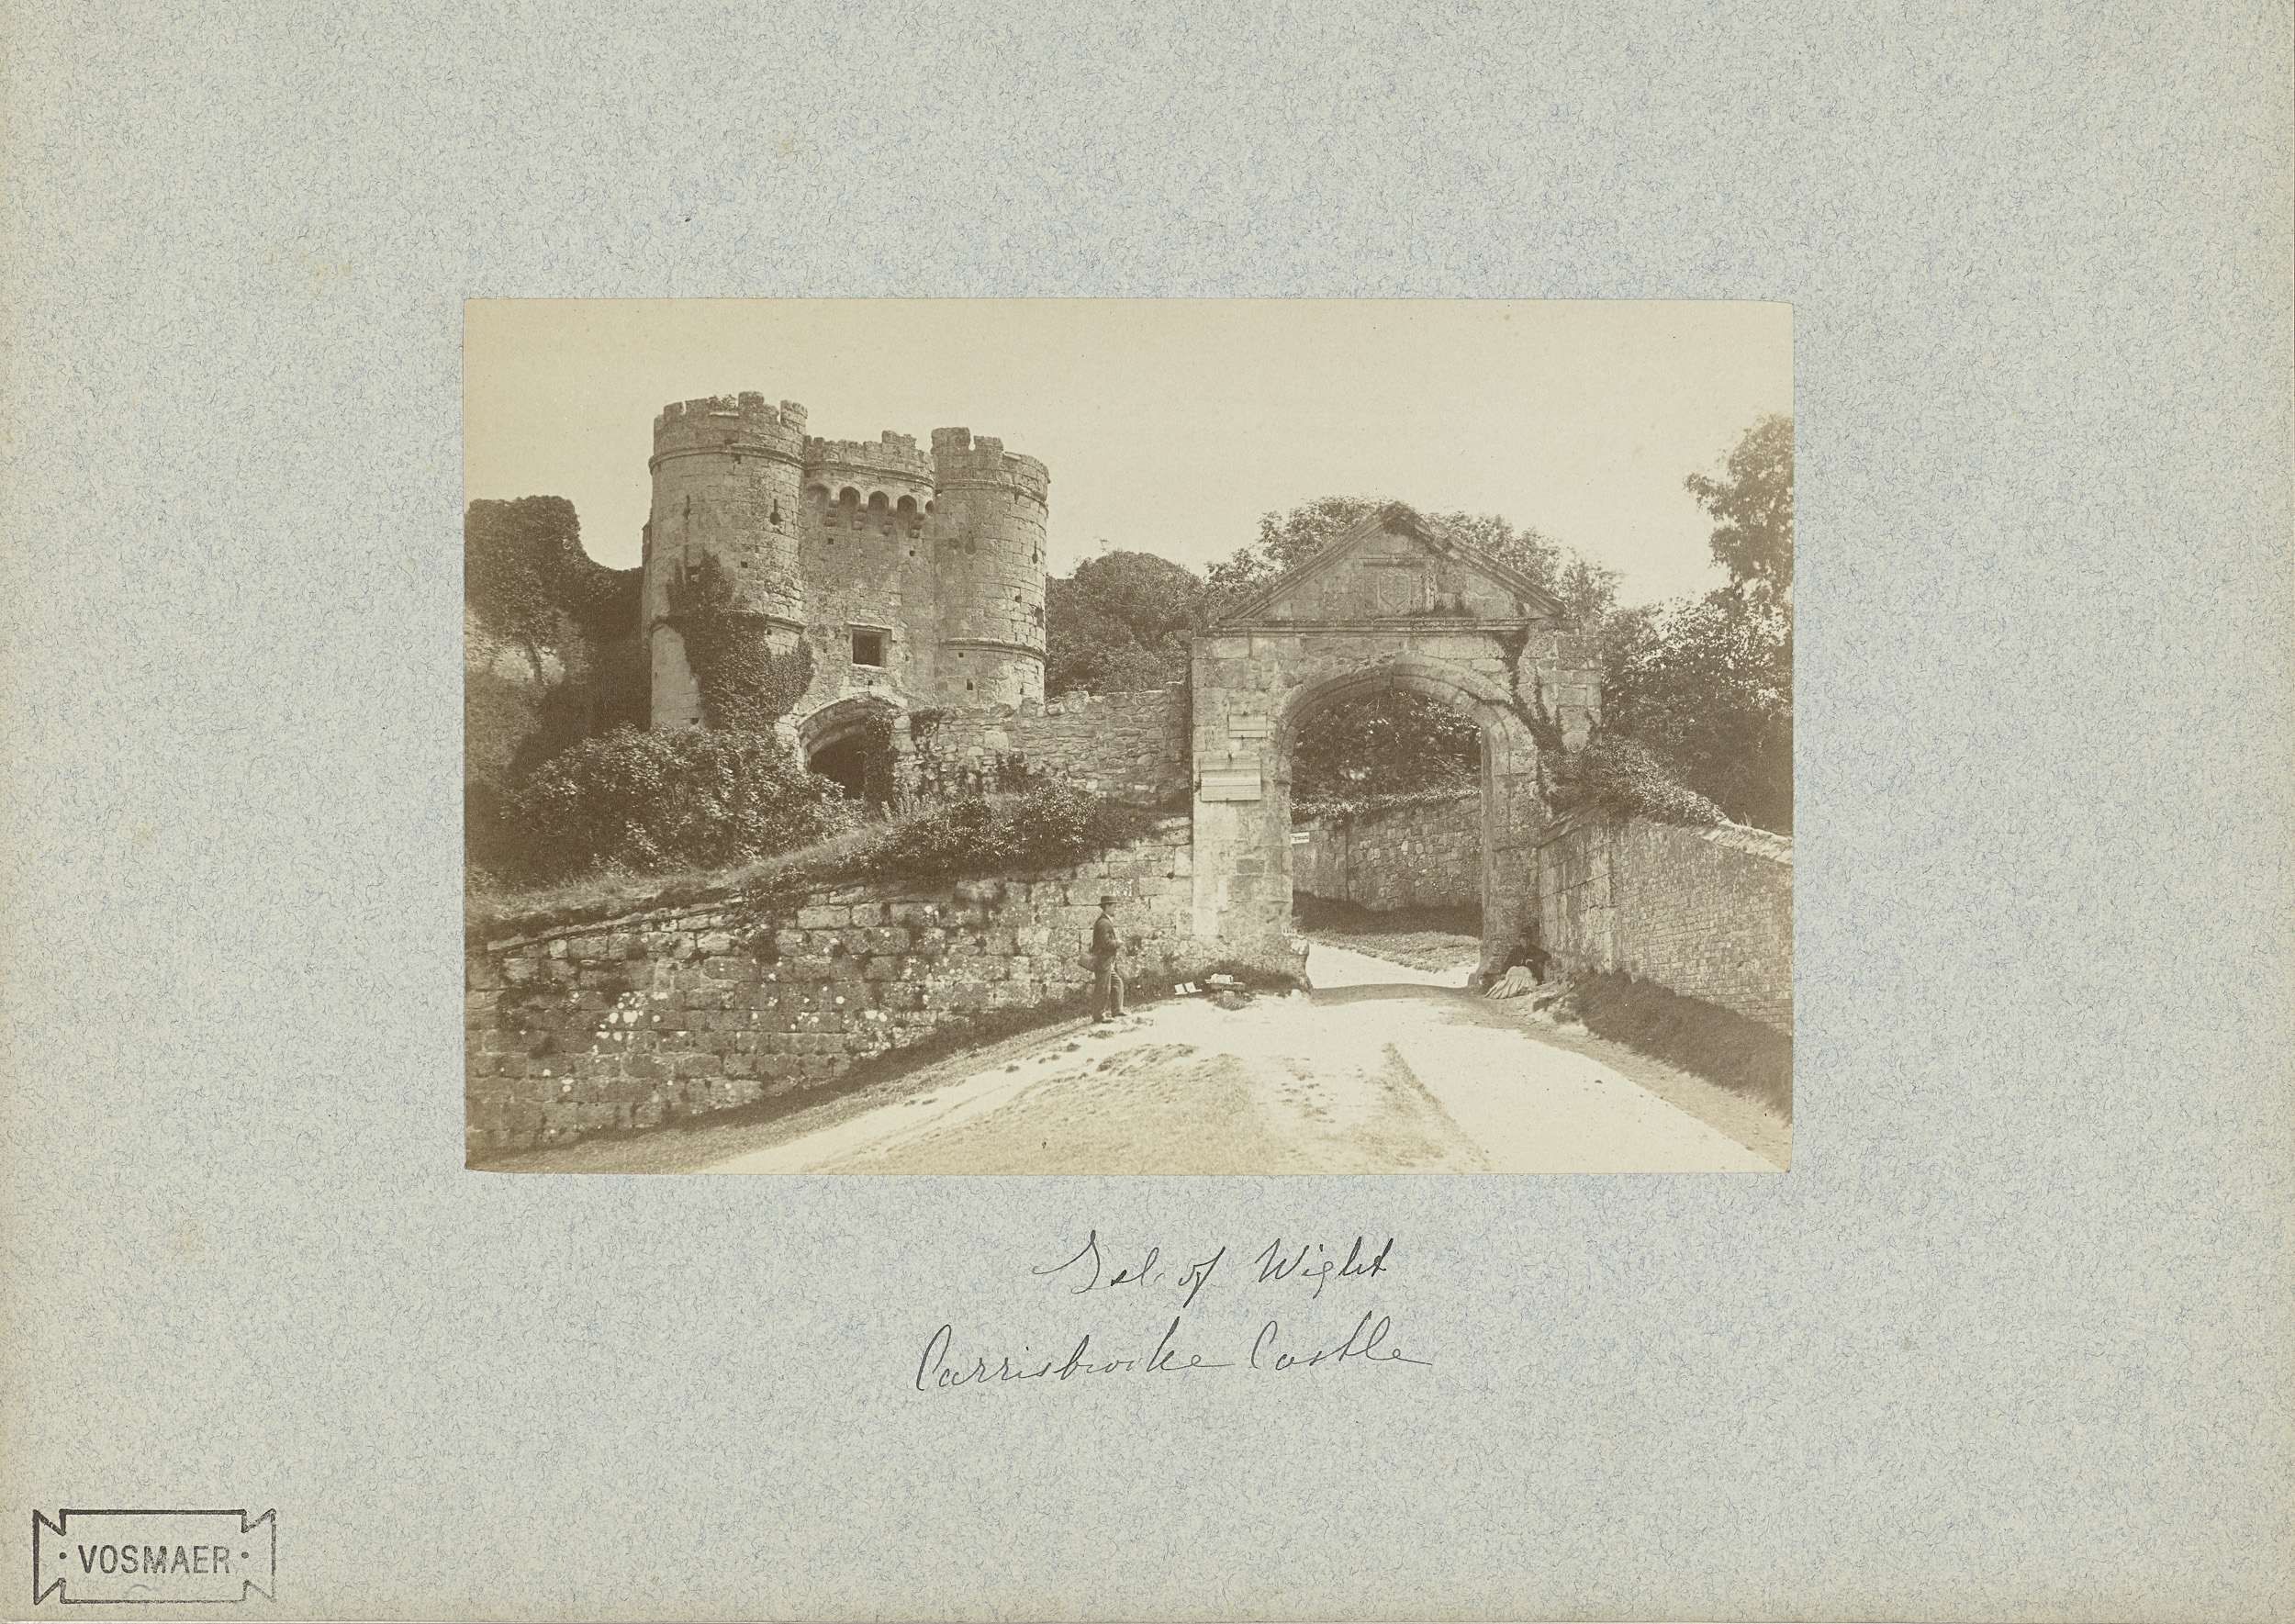 Anonymous | Toegangspoort tot Carrisbrooke Castle op Isle of Wight, Anonymous, 1870 - 1890 |